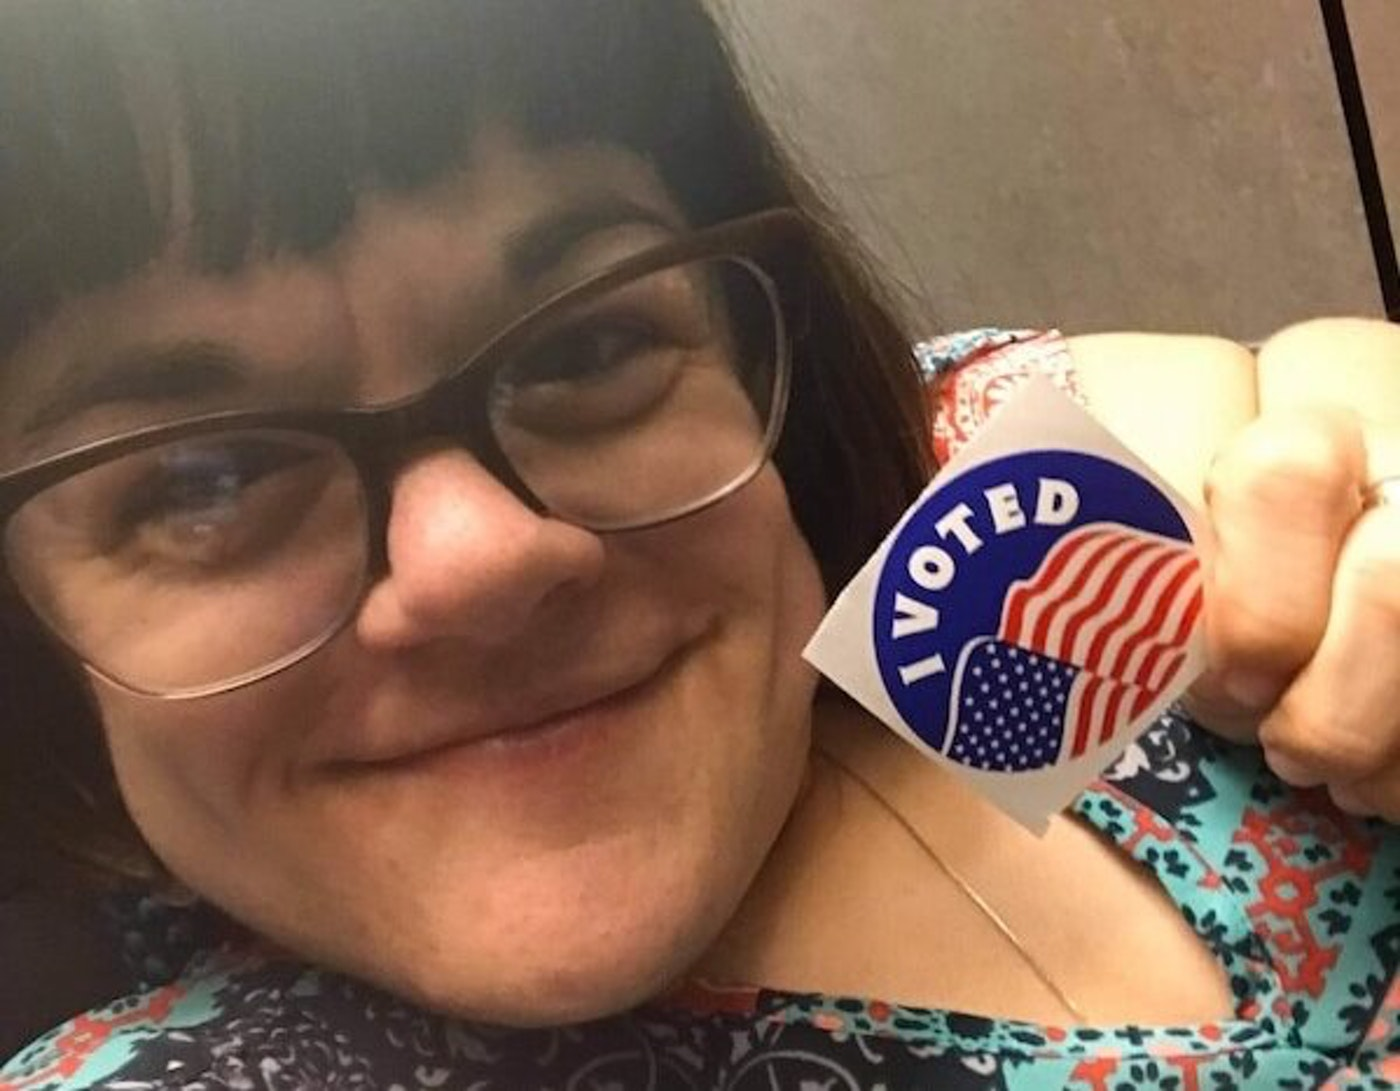 Stephanie Birmingham, a Sturgeon Bay resident who uses a wheelchair, is concerned current Republican-authored proposals would make it harder for her and other people with disabilities to cast ballots. (Photo courtesy of Stephanie Birmingham)